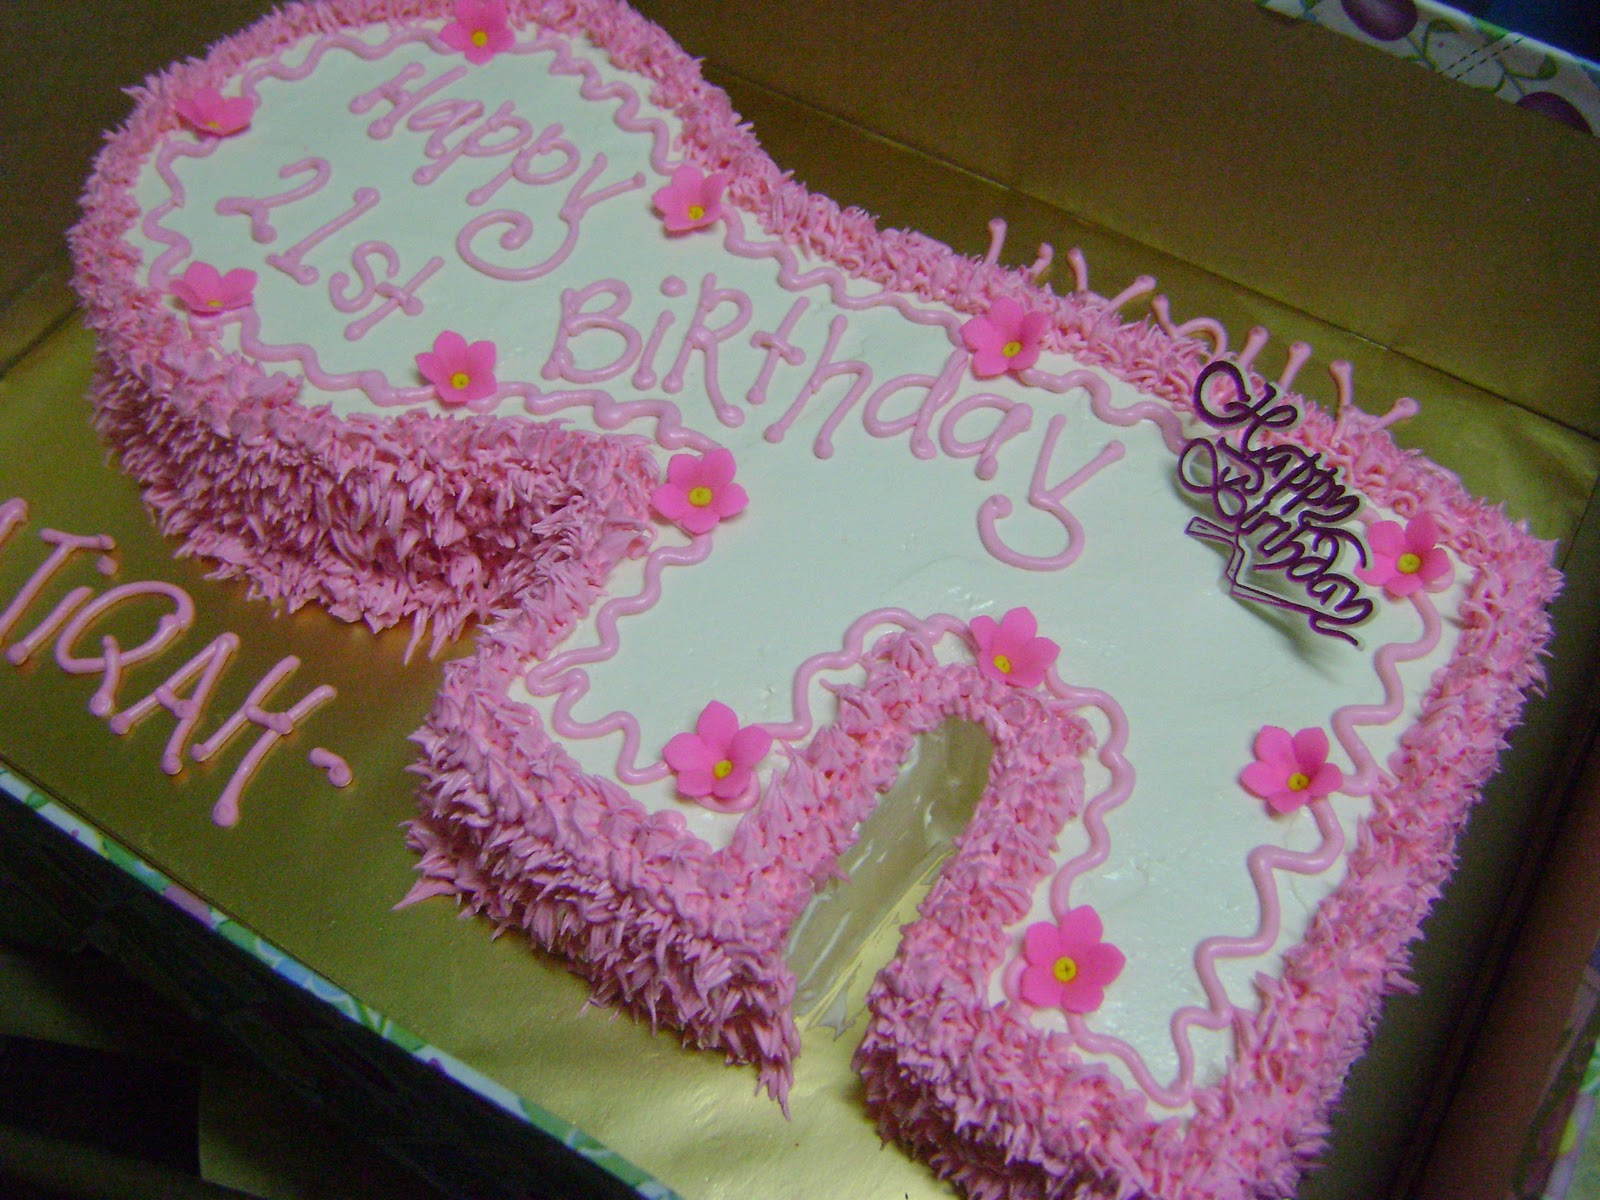 Happy 21St Birthday Cakes http://irenebakelove.blogspot.com/2010/10/happy-21st-birthday-key-shaped-cakes.html